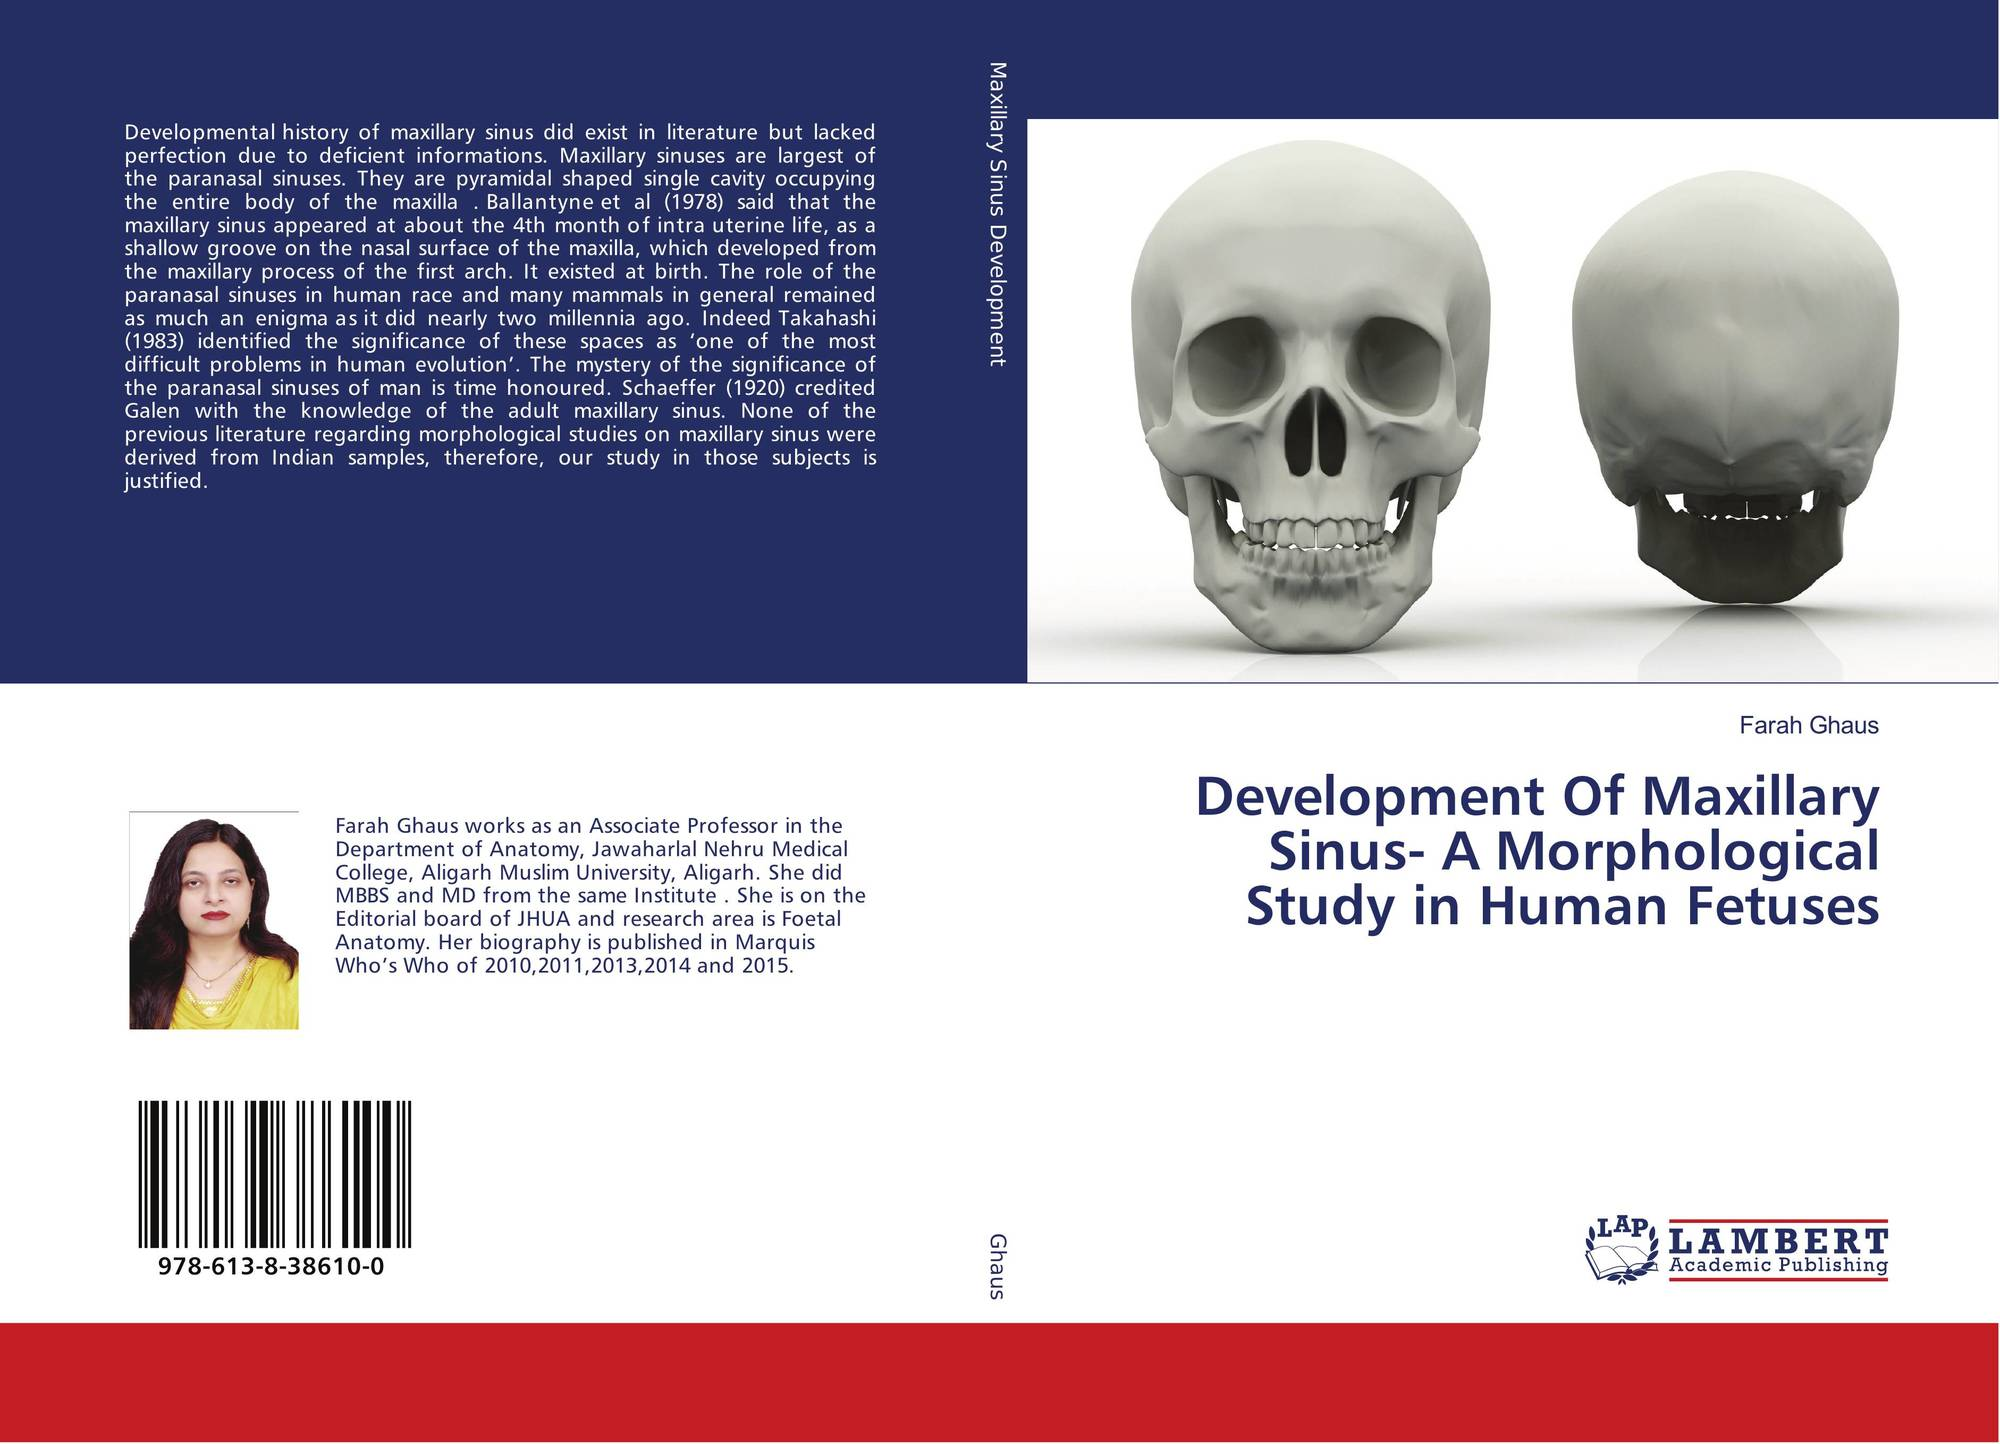 Development Of Maxillary Sinus- A Morphological Study in Human ...